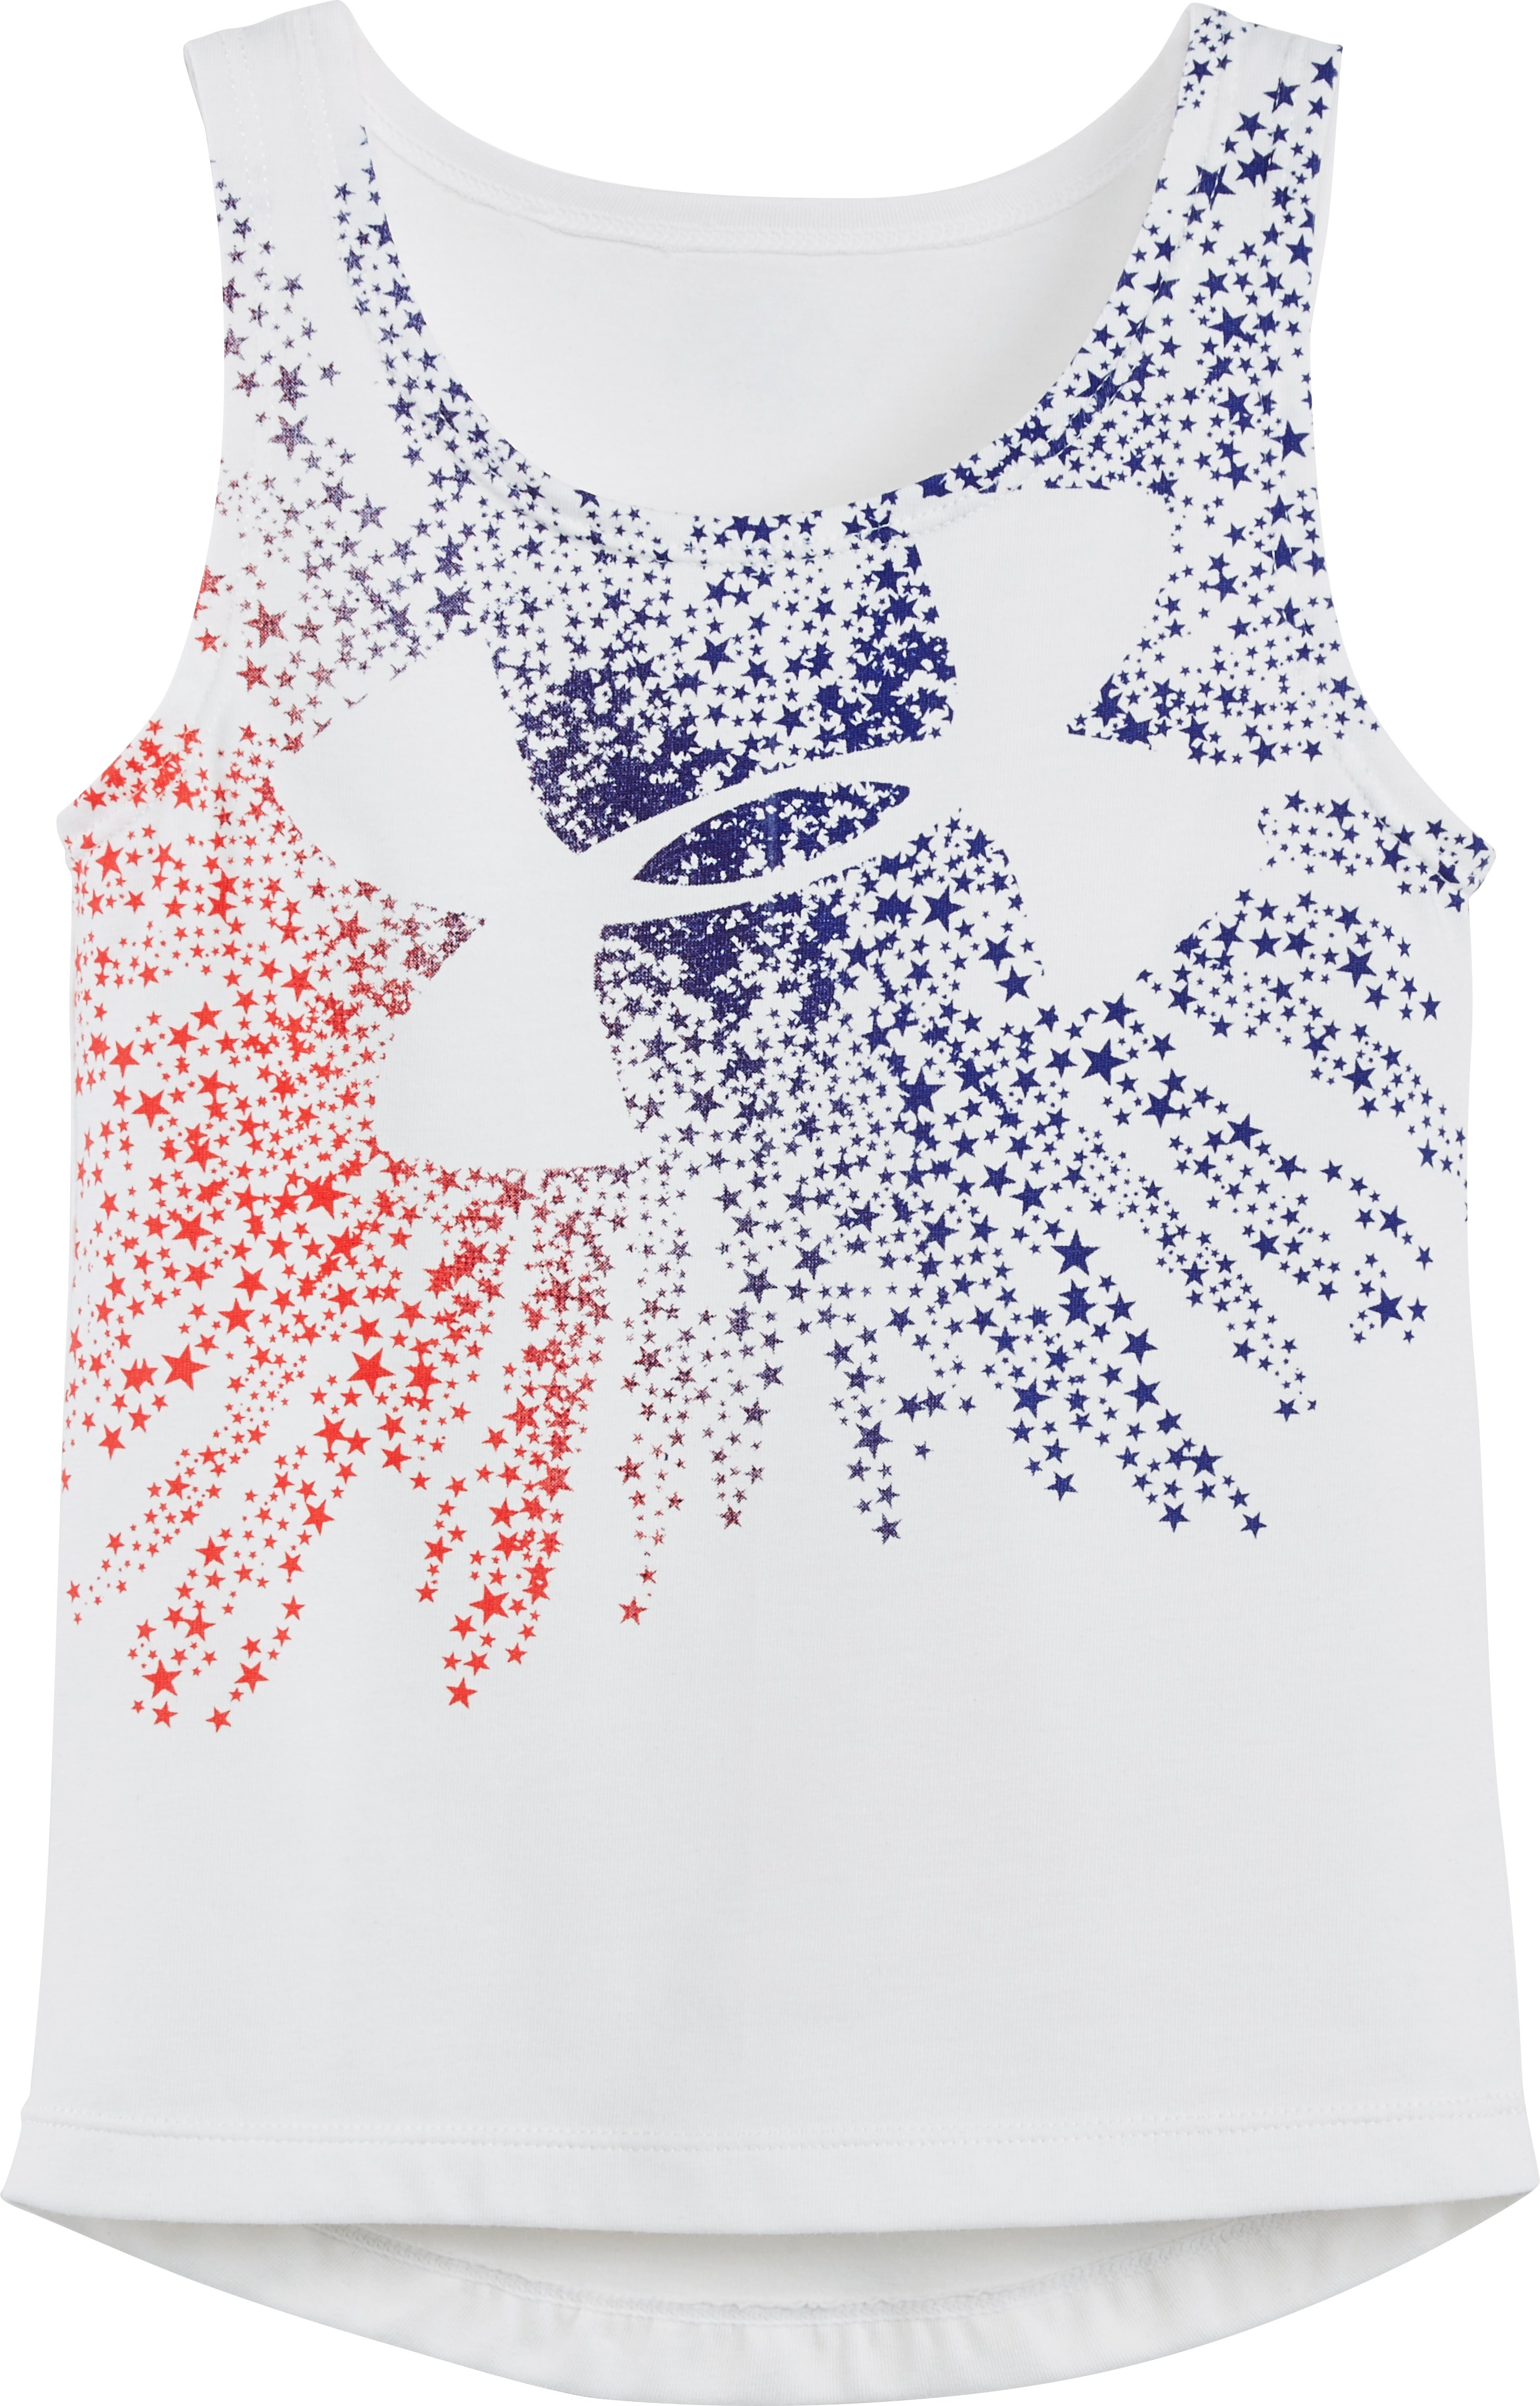 Girls' Pre-School UA Shooting Star Big Logo Short Sleeve T-Shirt, White, zoomed image